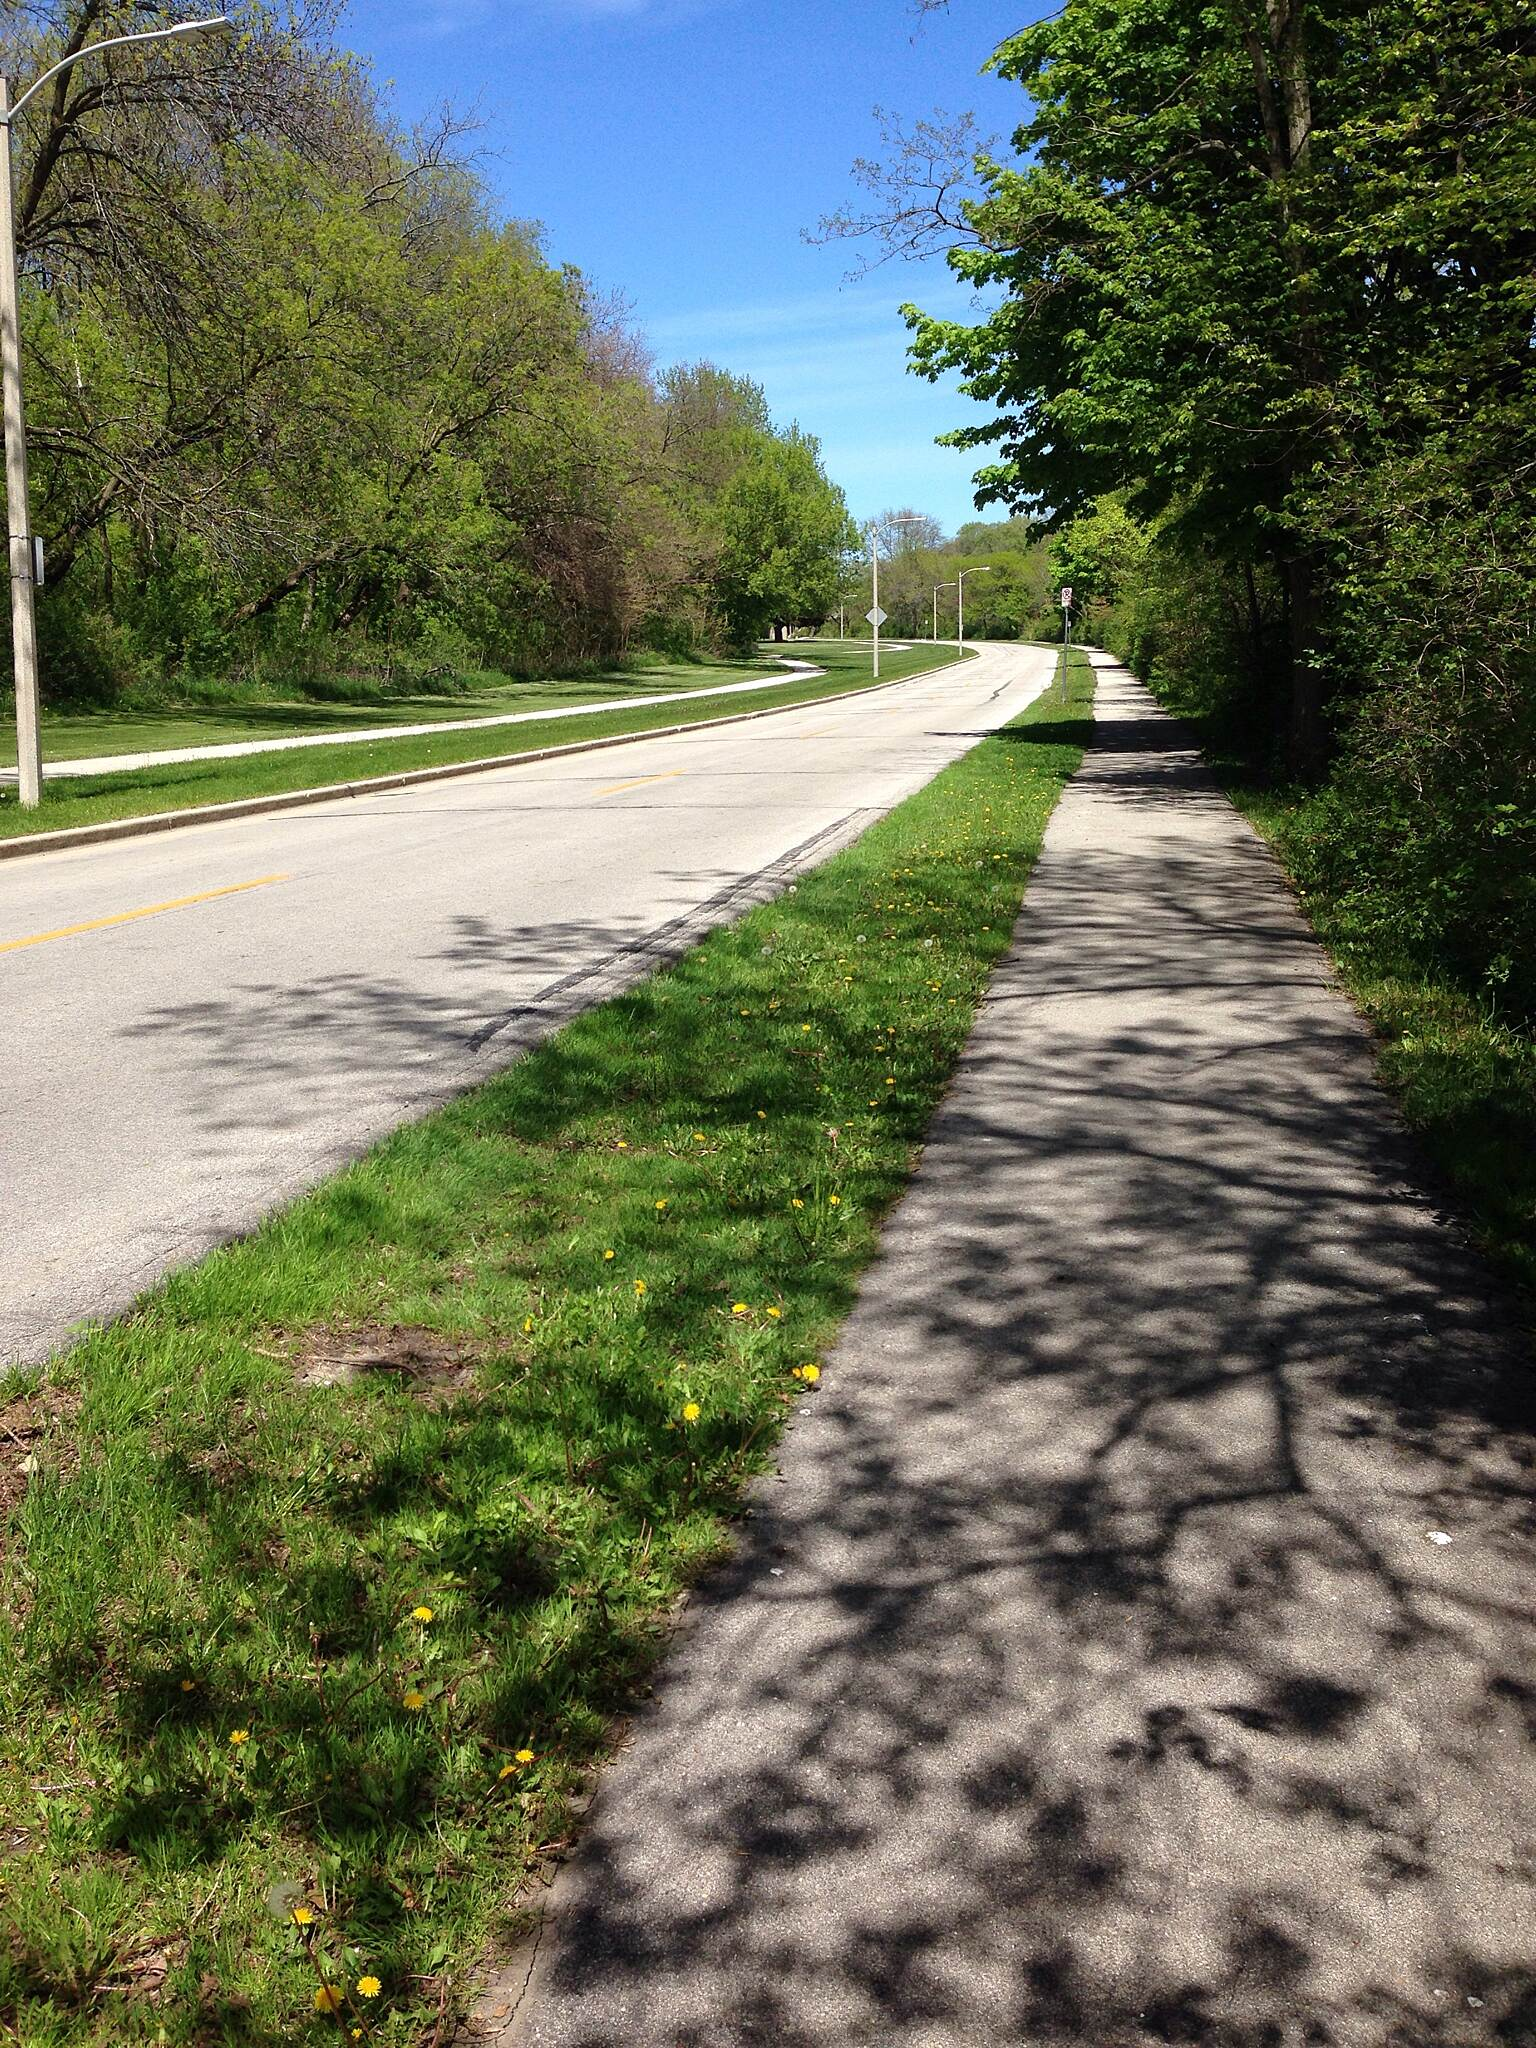 Kenosha County Bike Trail Kenosha County Bike Trail